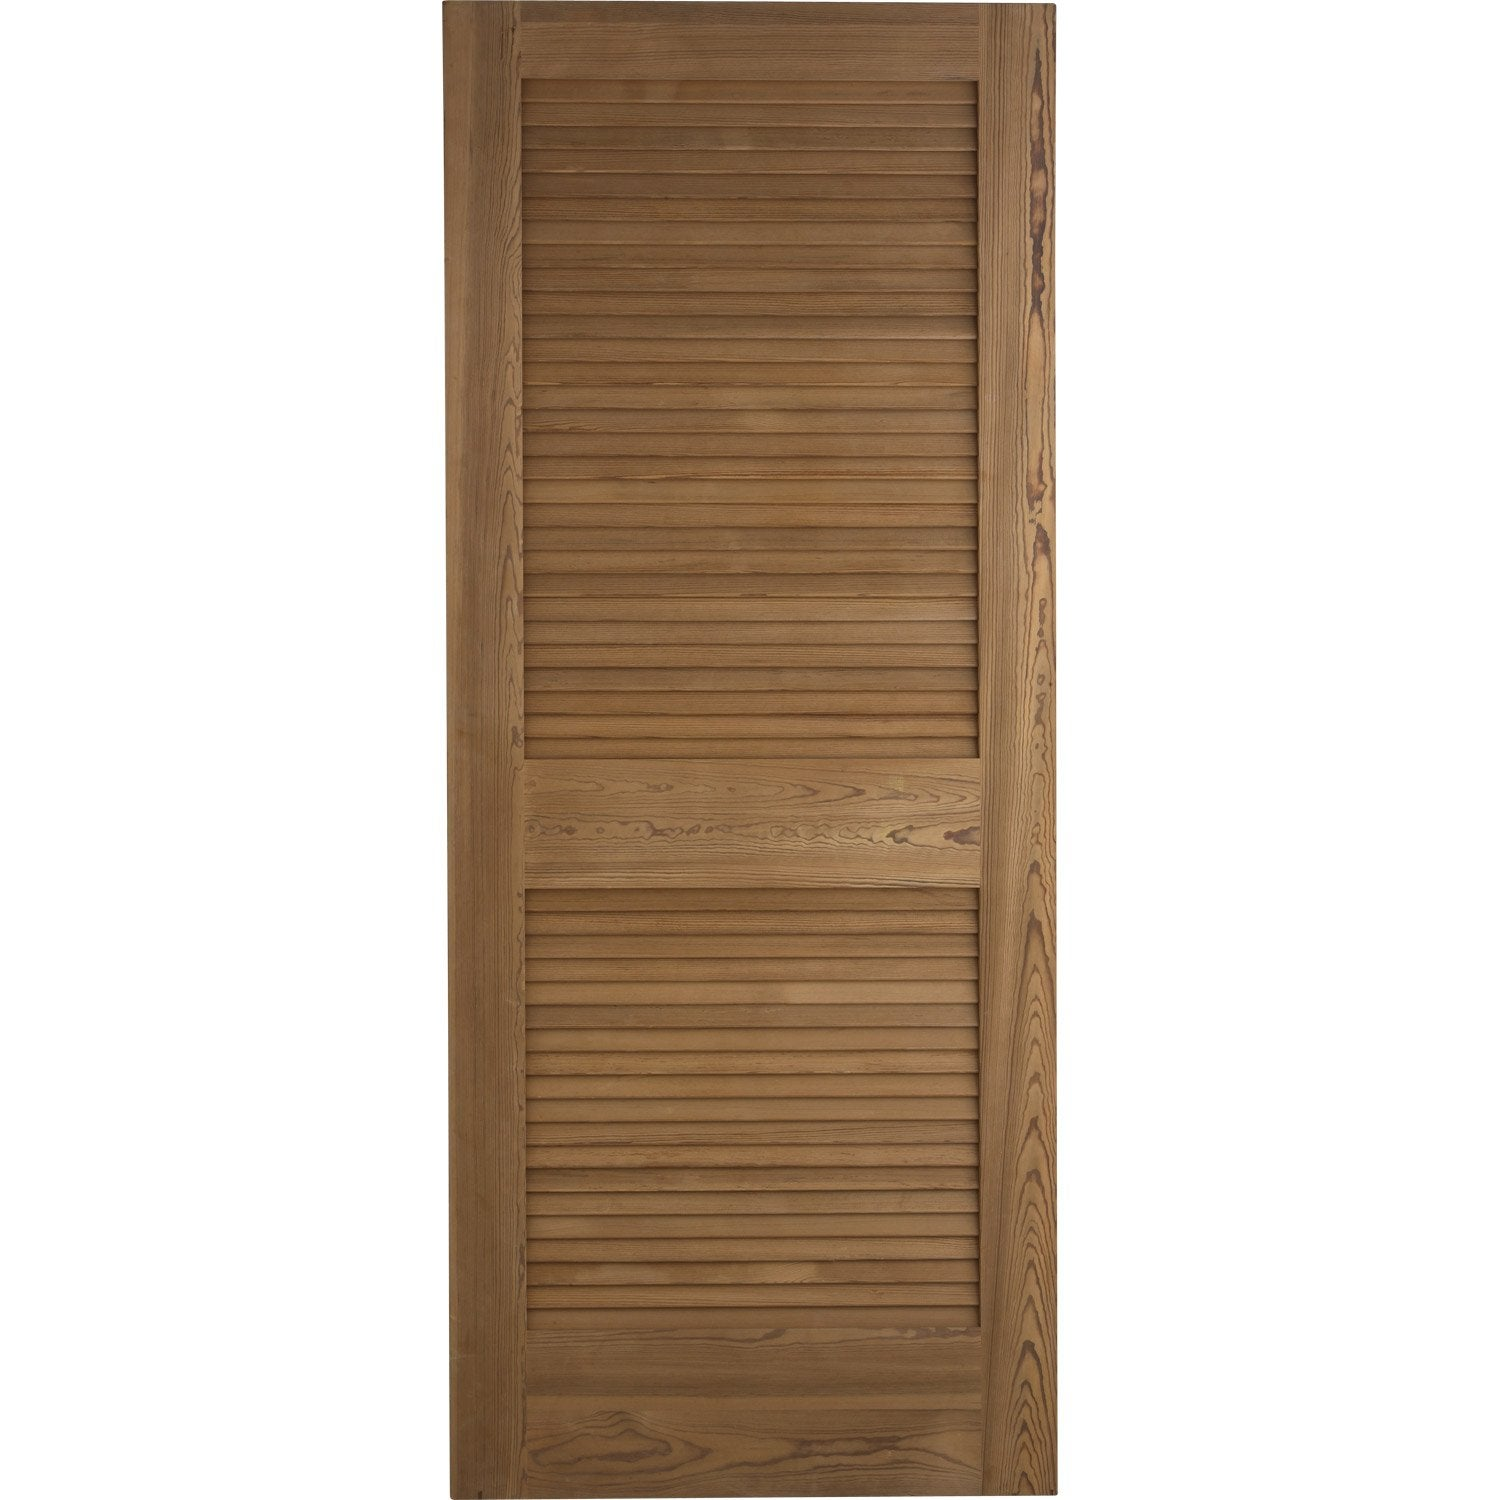 Porte coulissante pin plaqu marron java artens 204 x 73 - Porte coulissante interieur leroy merlin ...